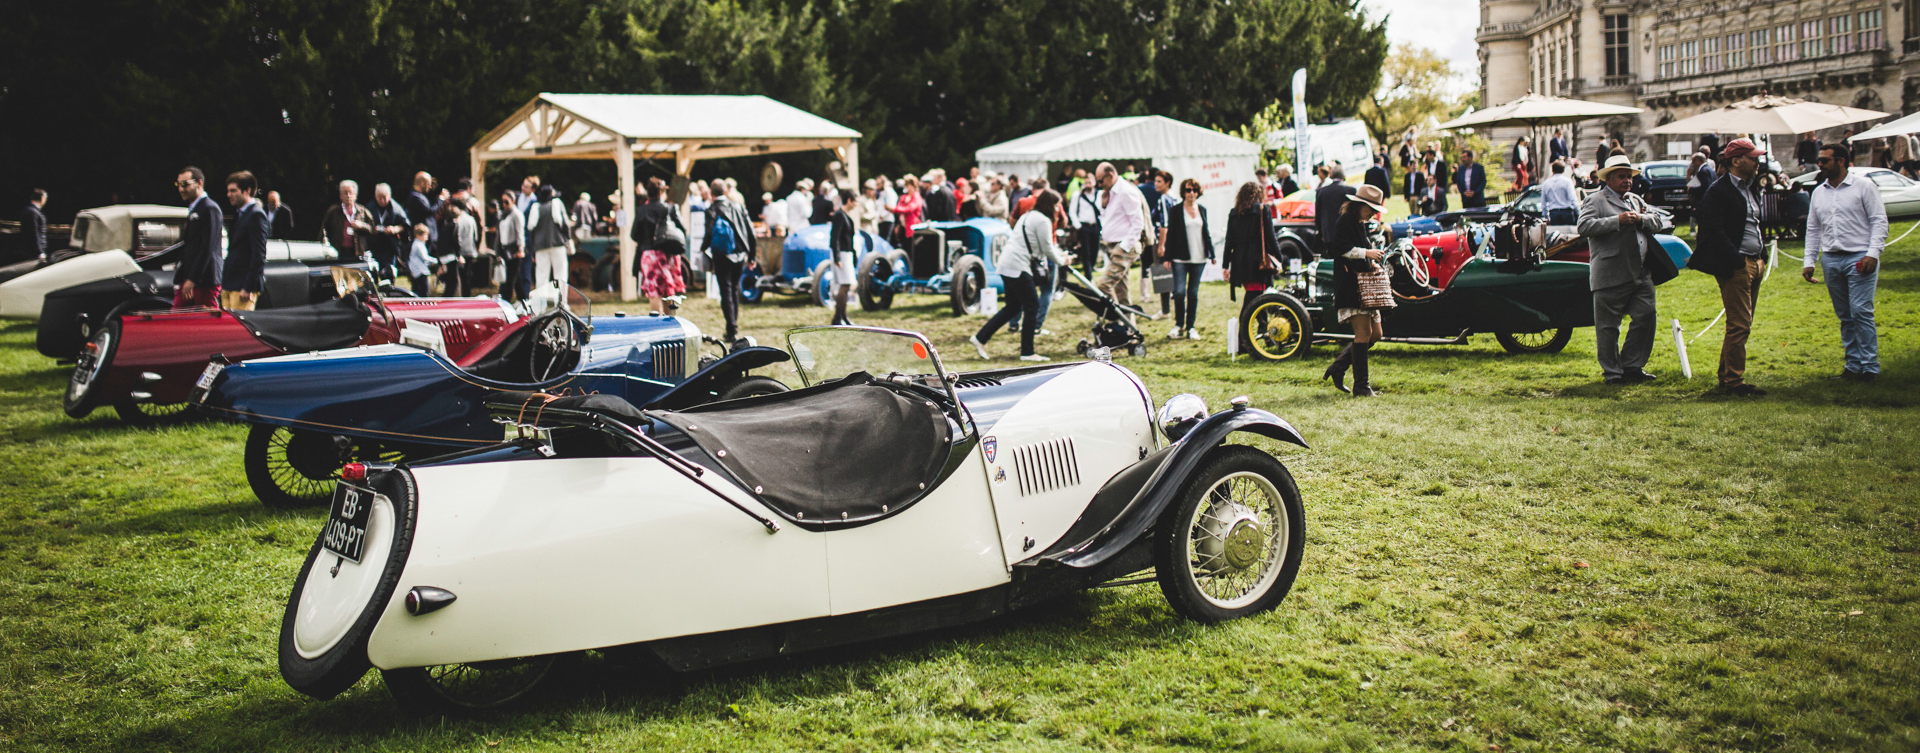 Grand Prix des Clubs - Chantilly Arts & Elegance Richard Mille